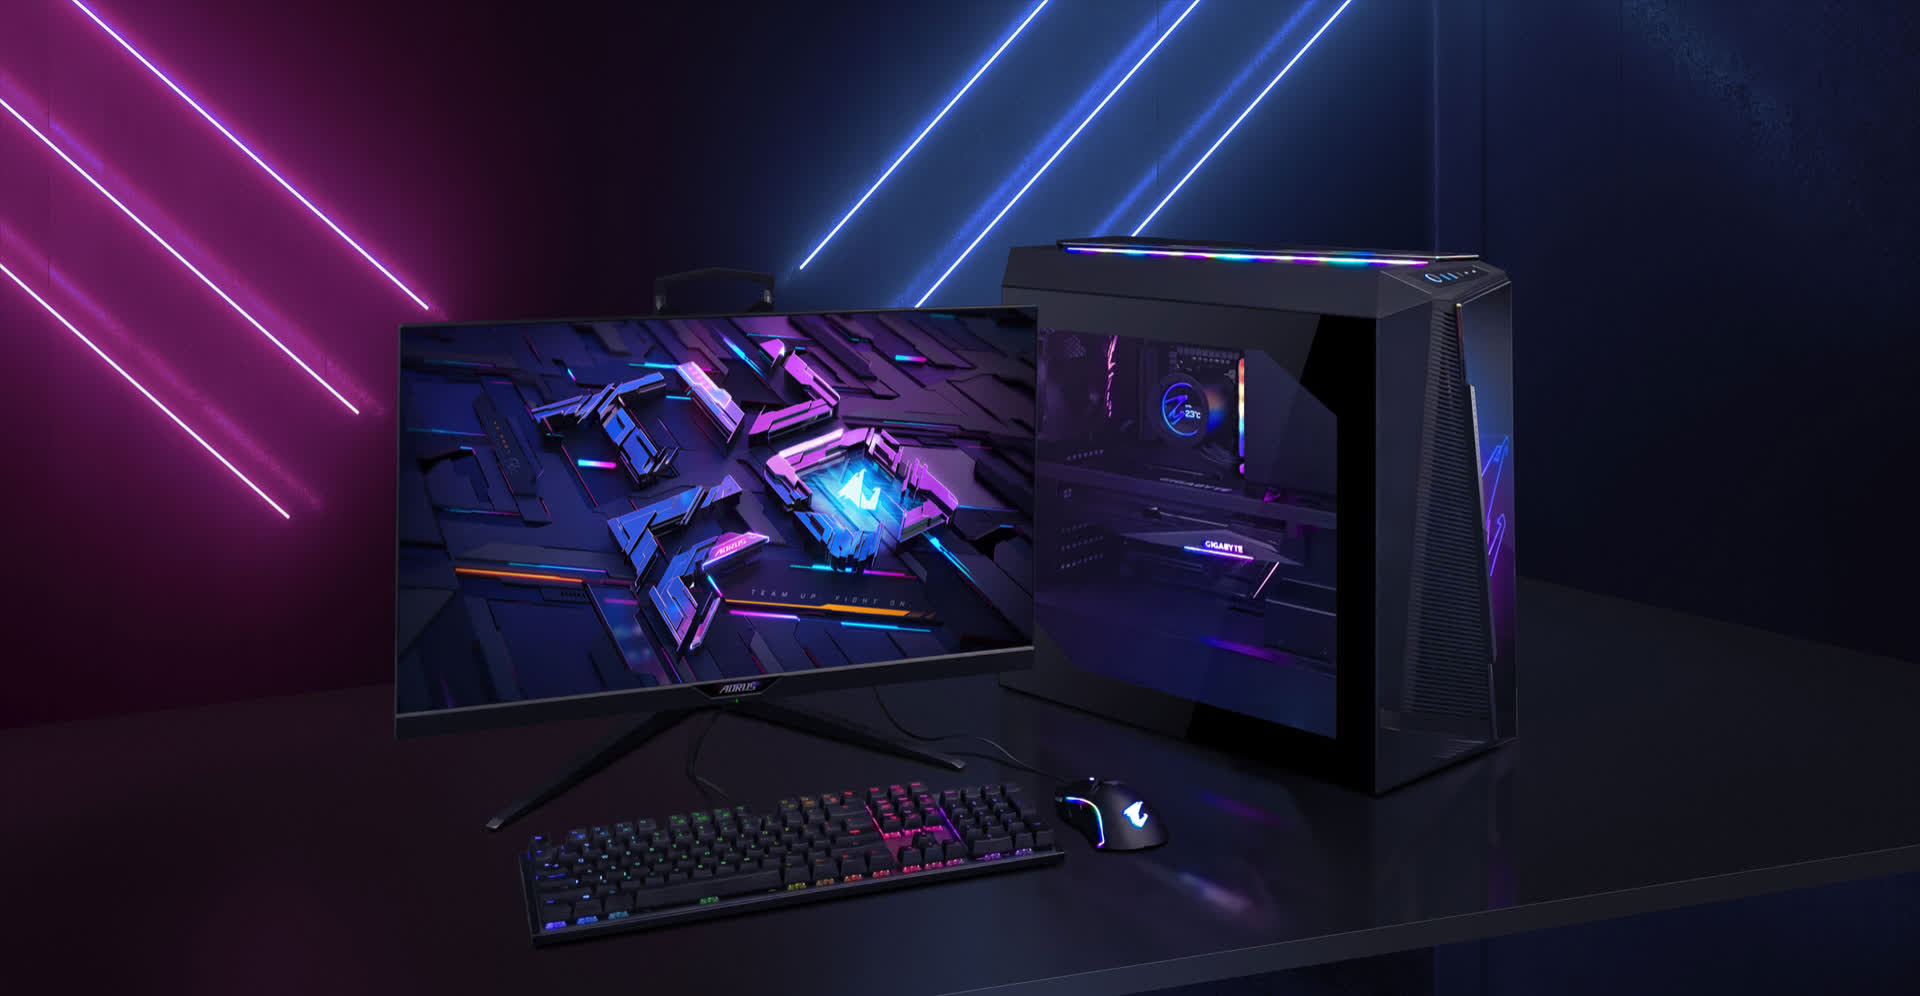 Gigabyte announces a pair of Aorus pre-built gaming rigs with Intel/AMD chips and Nvidia RTX 3080 graphics